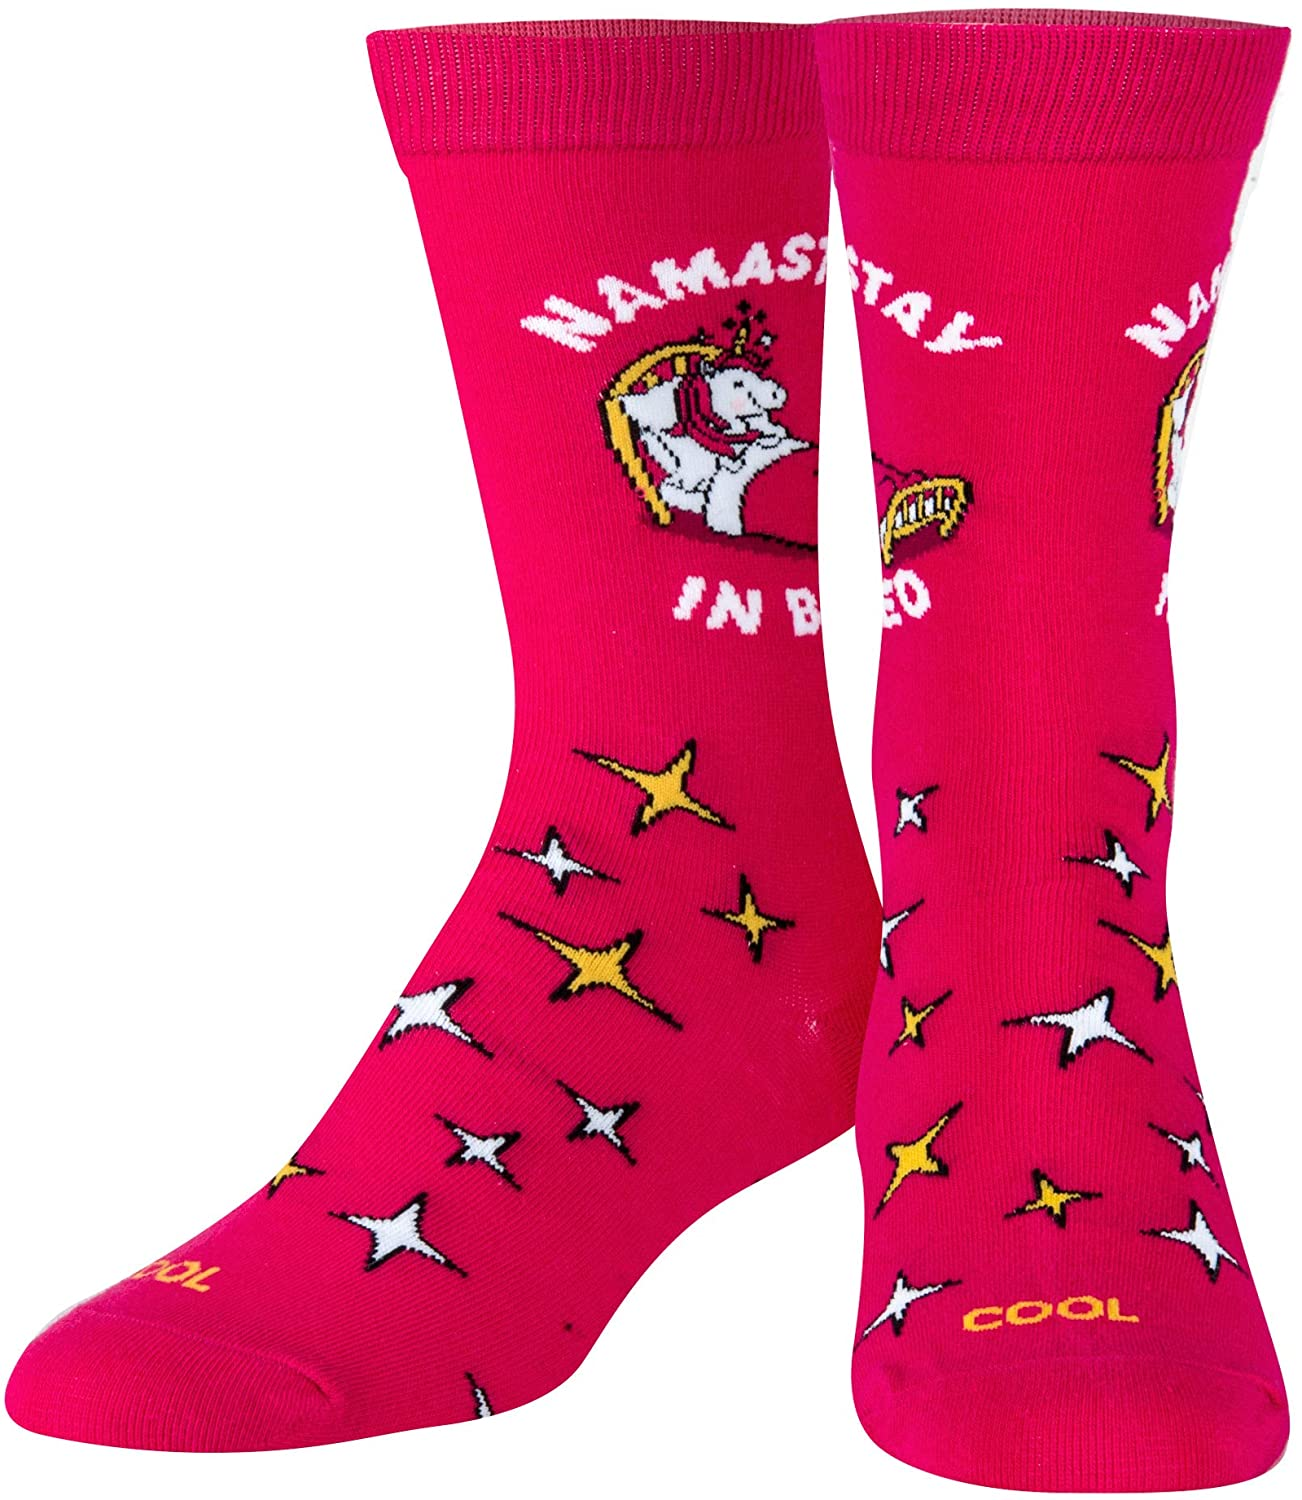 Cool Socks, Women's, Graphic, Unique Designs, Crew, Novelty Funny Silly Cute